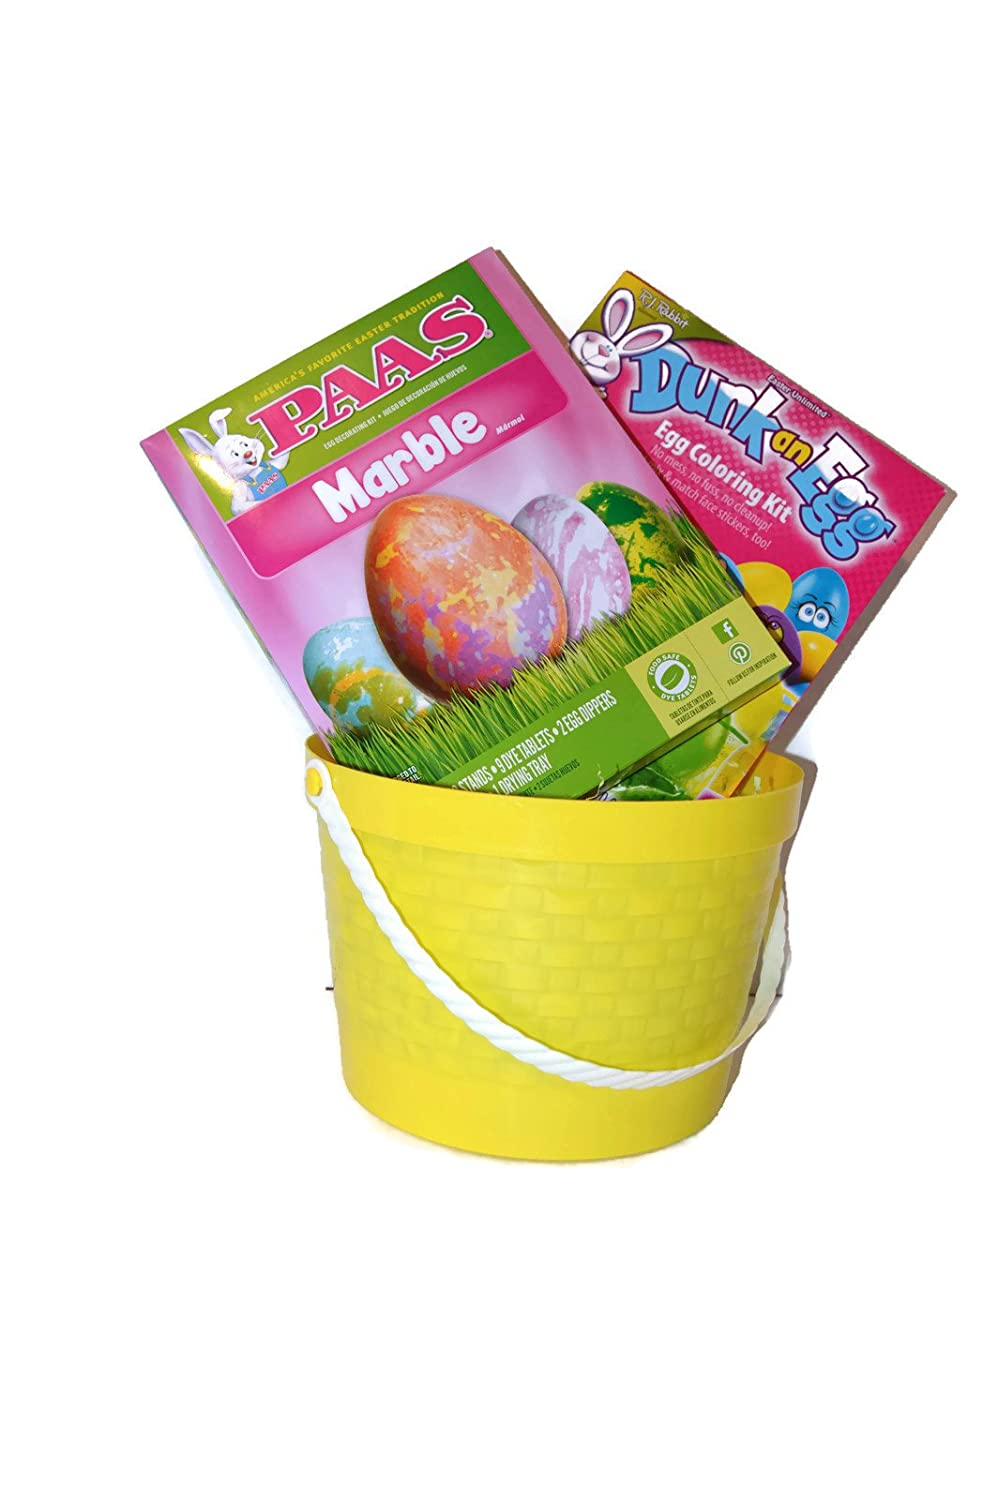 TWO 2 DUNK AN EGGS; EASTER DYE COLOR DECORATING KITS